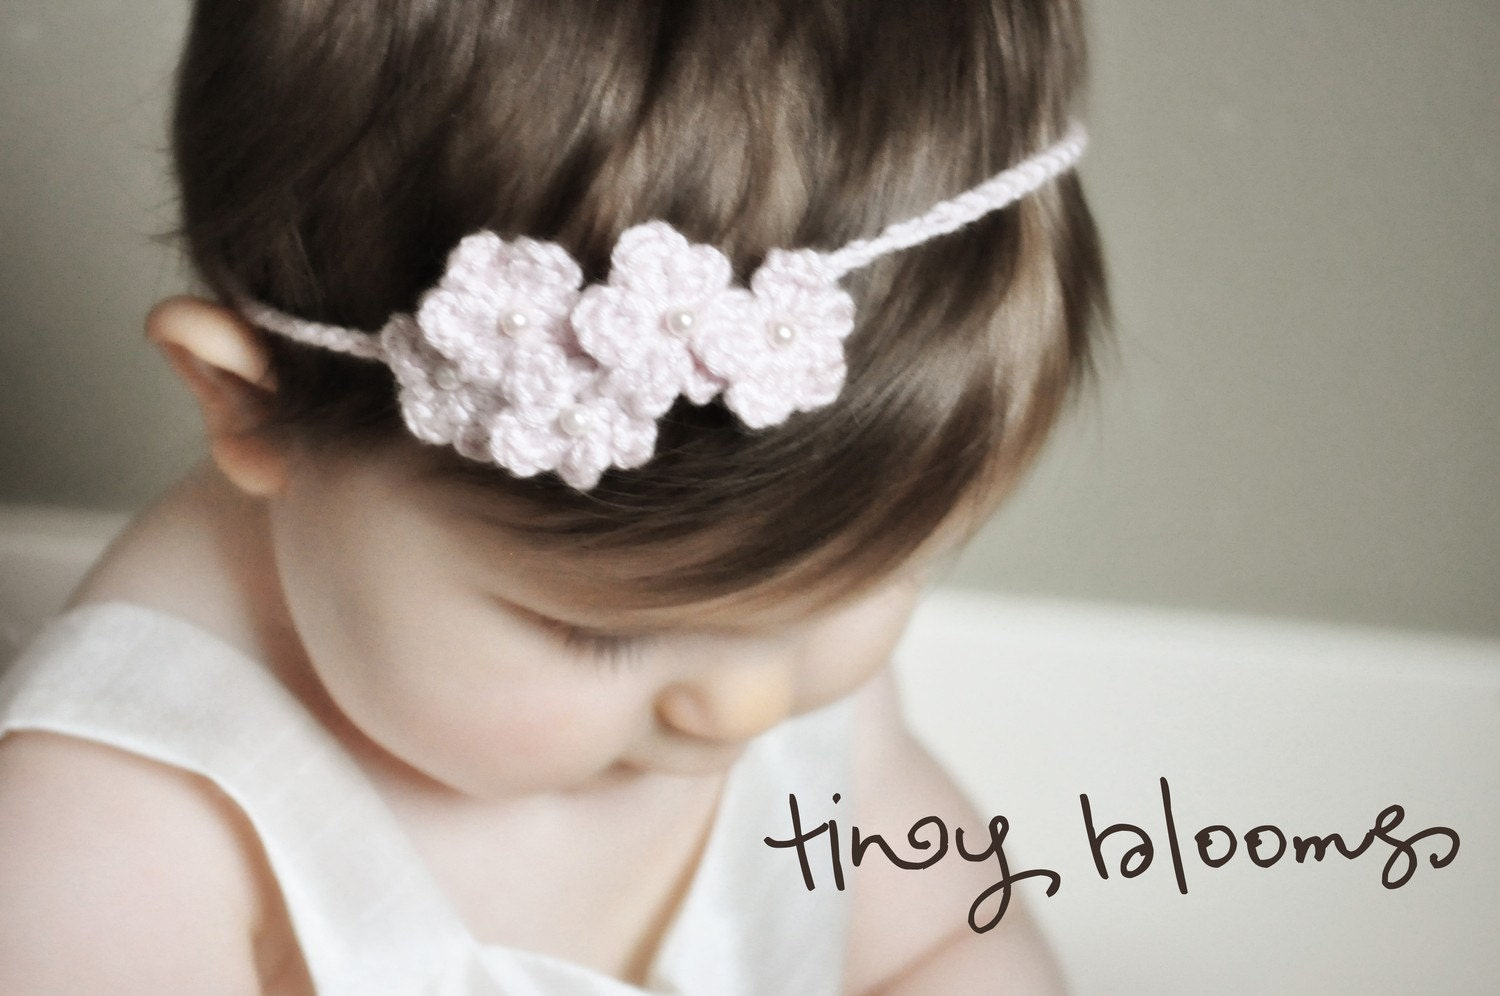 Crochet Headband Pattern For Baby With Flower : Spring Blooms Crochet Flower Headbands by LittleBirdieShoppe